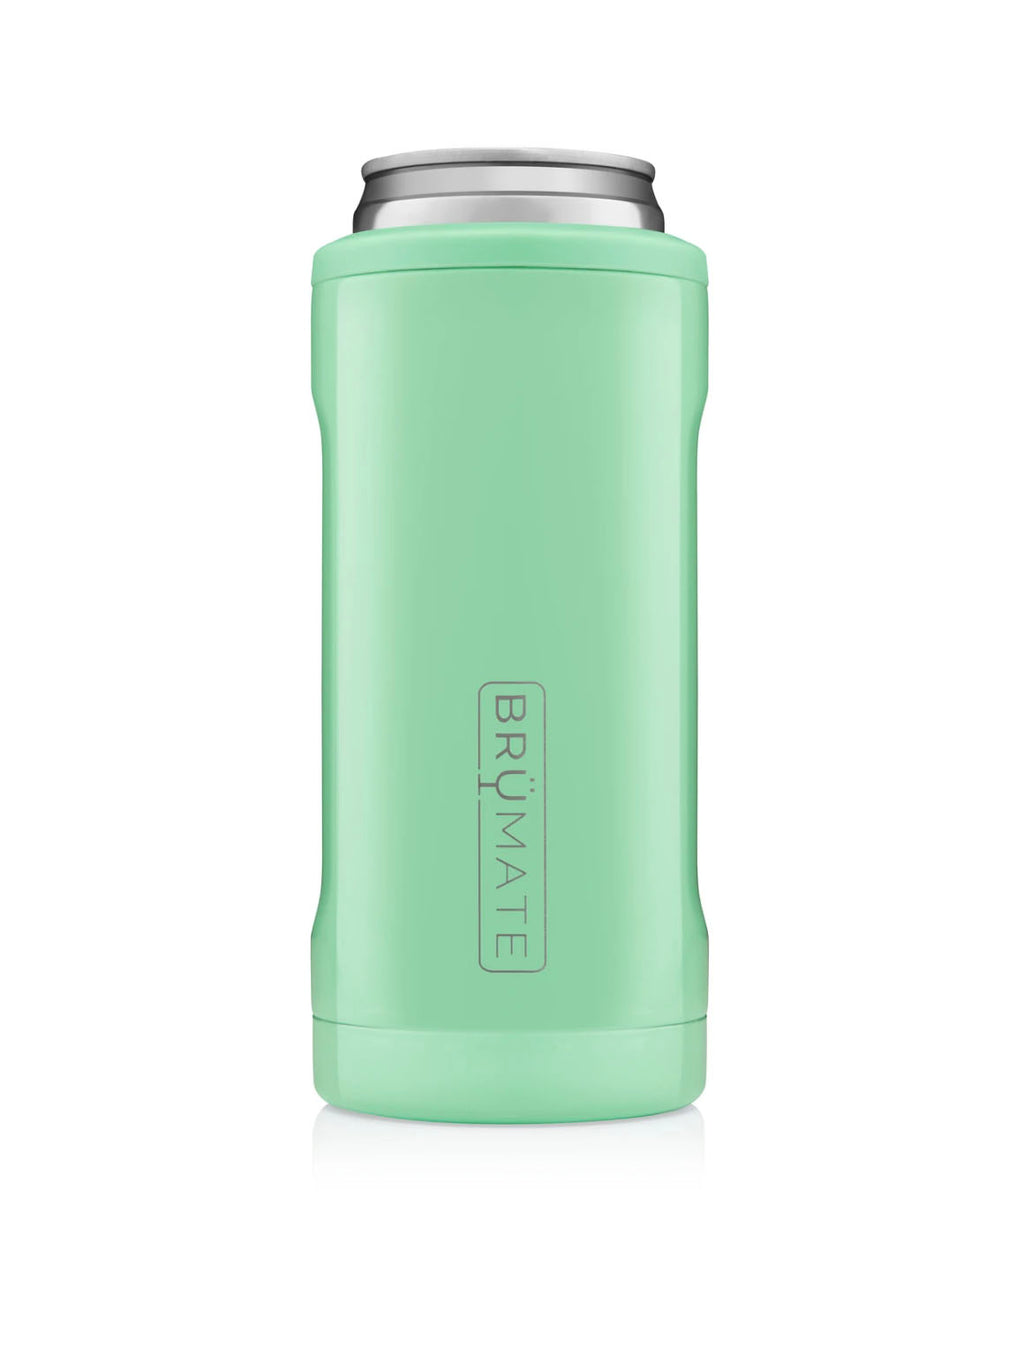 BrüMate Hopsulator Slim in Seafoam